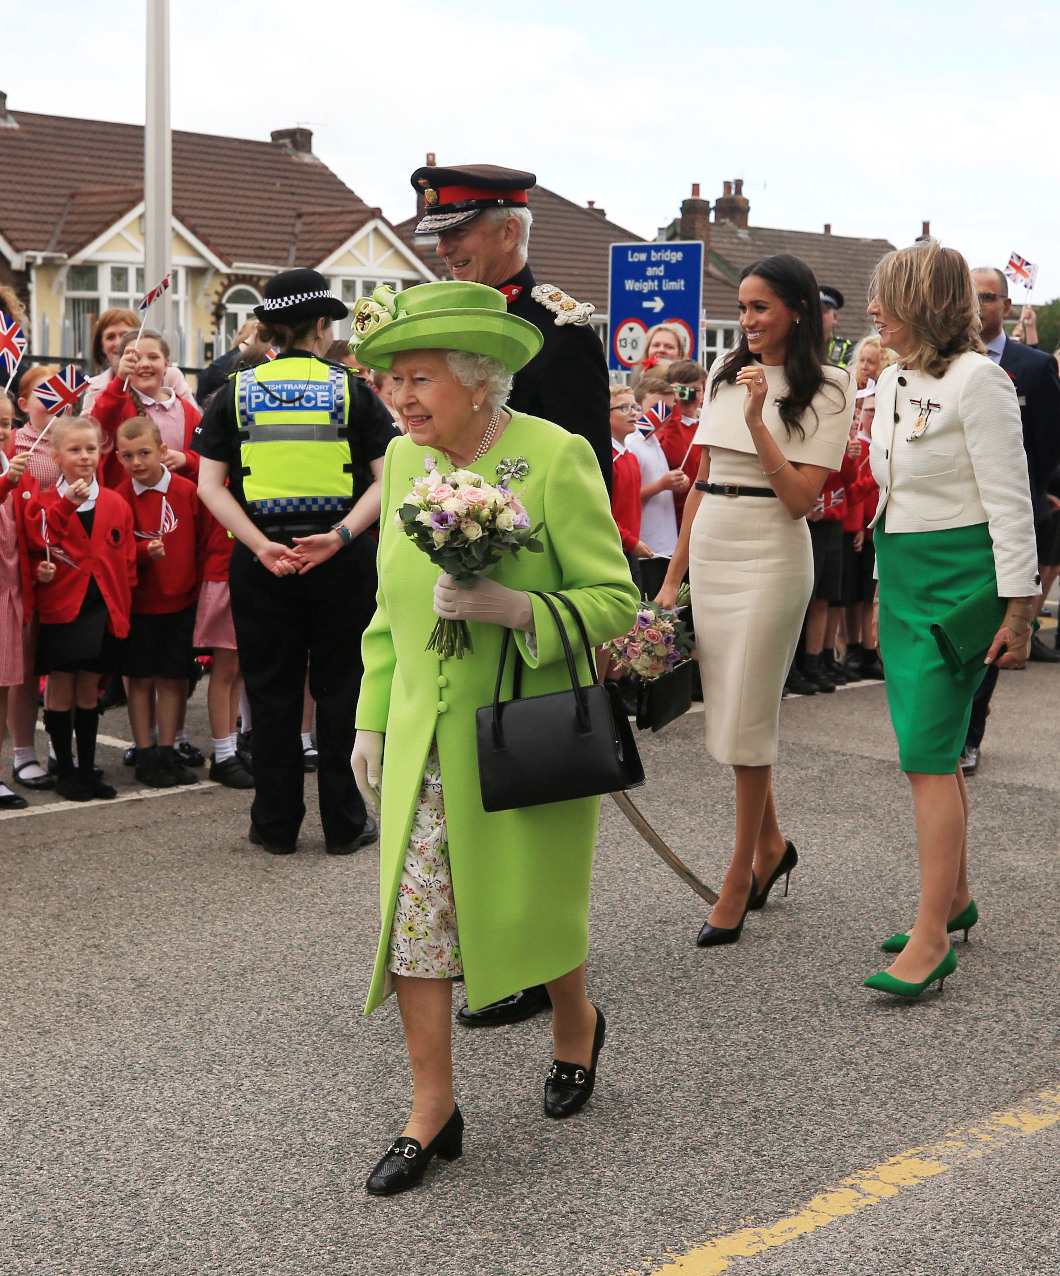 RUNCORN, CHESHIRE, ENGLAND - JUNE 14:  Queen Elizabeth II holds flowers as she and Meghan, Duchess of Sussex greet the crowds after arriving by Royal Train at Runcorn Station to open the new Mersey Gateway Bridge on June 14, 2018 in the town of Runcorn, Cheshire, England. Meghan Markle married Prince Harry last month to become The Duchess of Sussex and this is her first engagement with the Queen. During the visit the pair will open a road bridge in Widnes and visit The Storyhouse and Town Hall in Chester.  (Photo by Peter Byrne - WPA Pool/Getty Images)